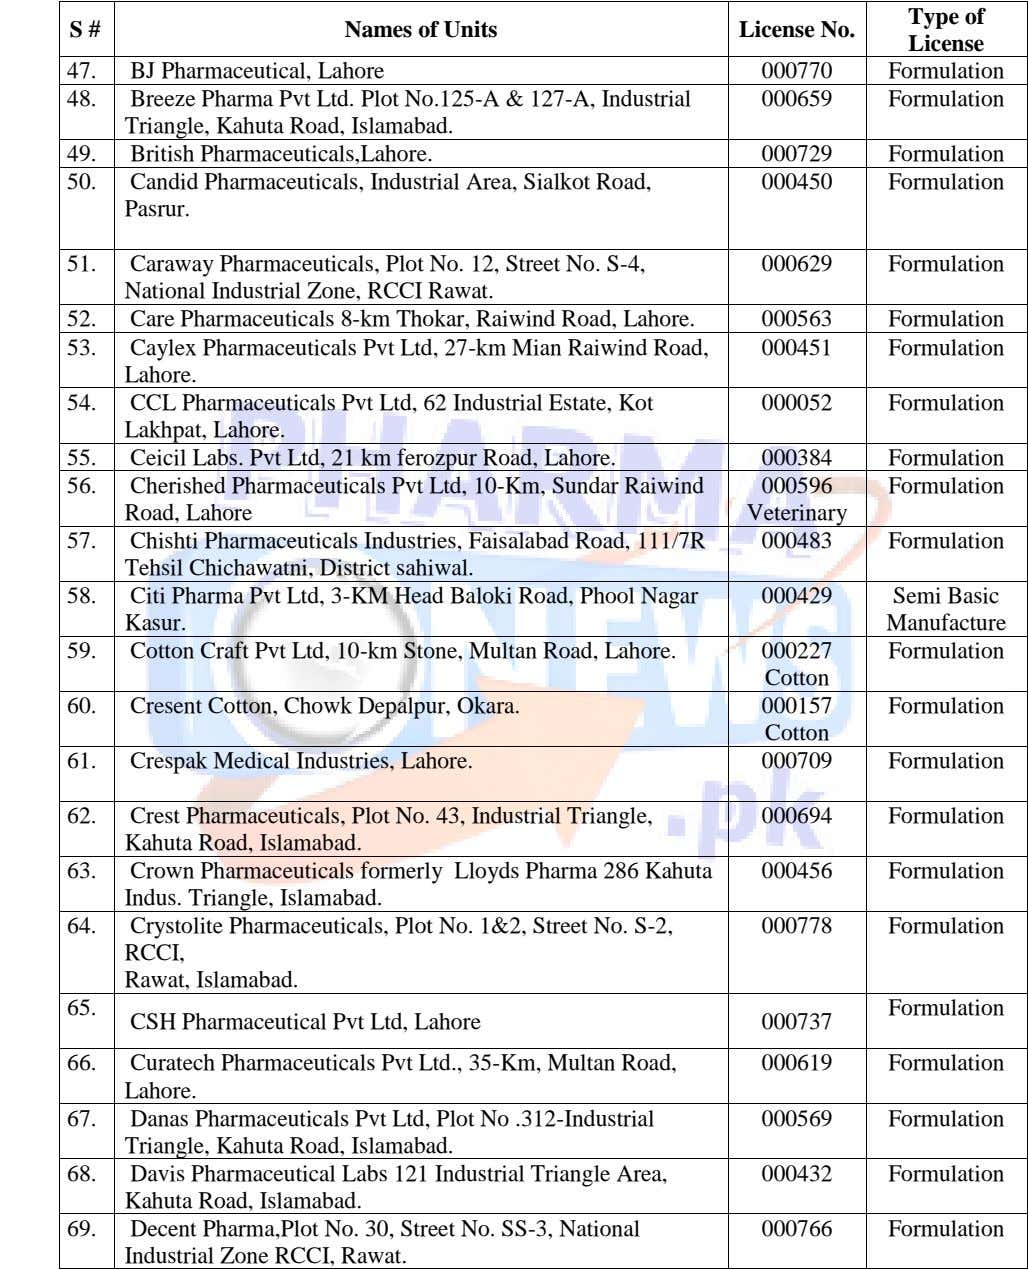 Type of S # Names of Units License No. License 47. BJ Pharmaceutical, Lahore 000770